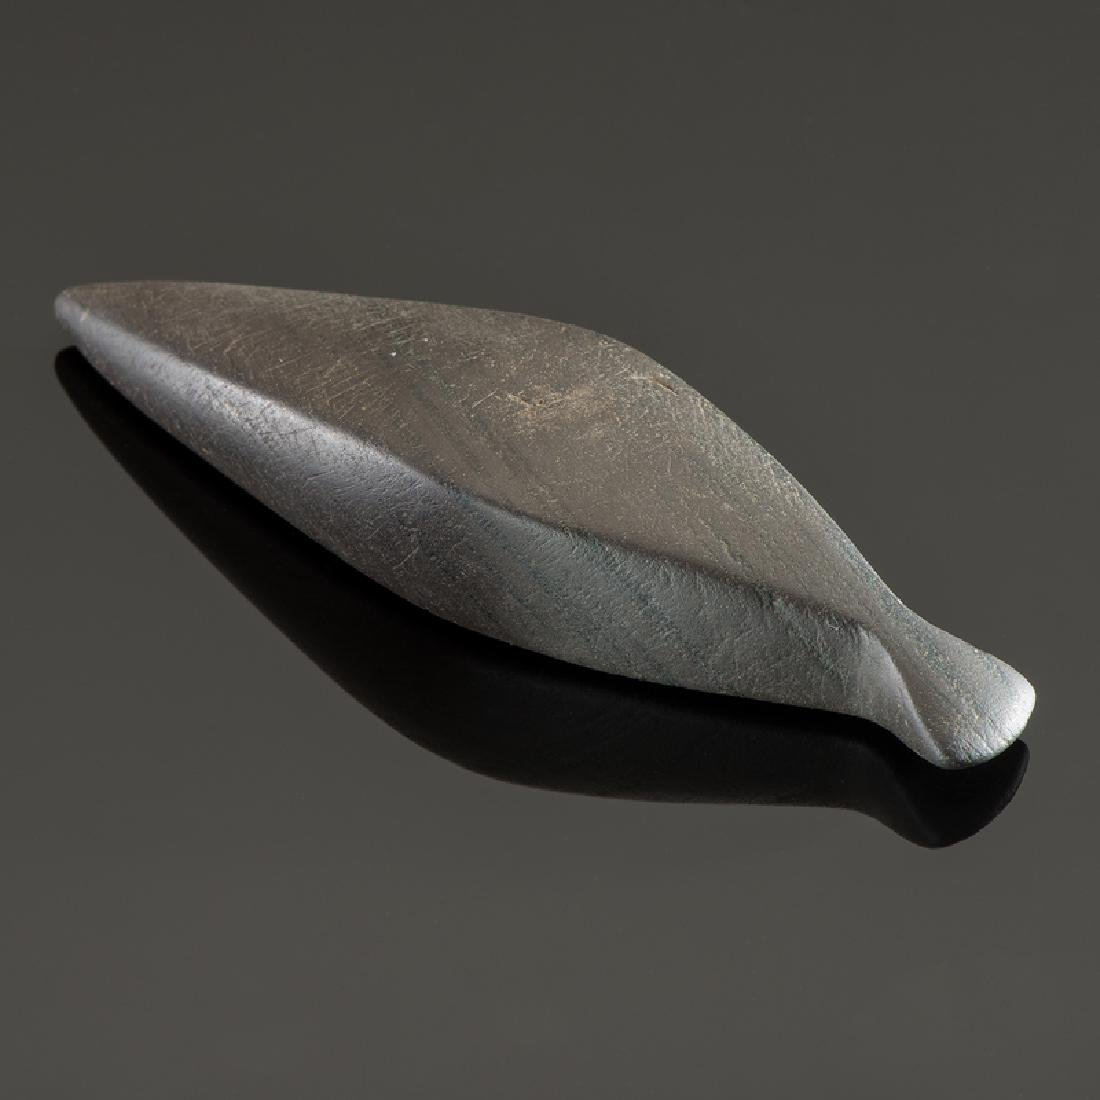 A Slate Lizard, From the Collection of Jan Sorgenfrei,